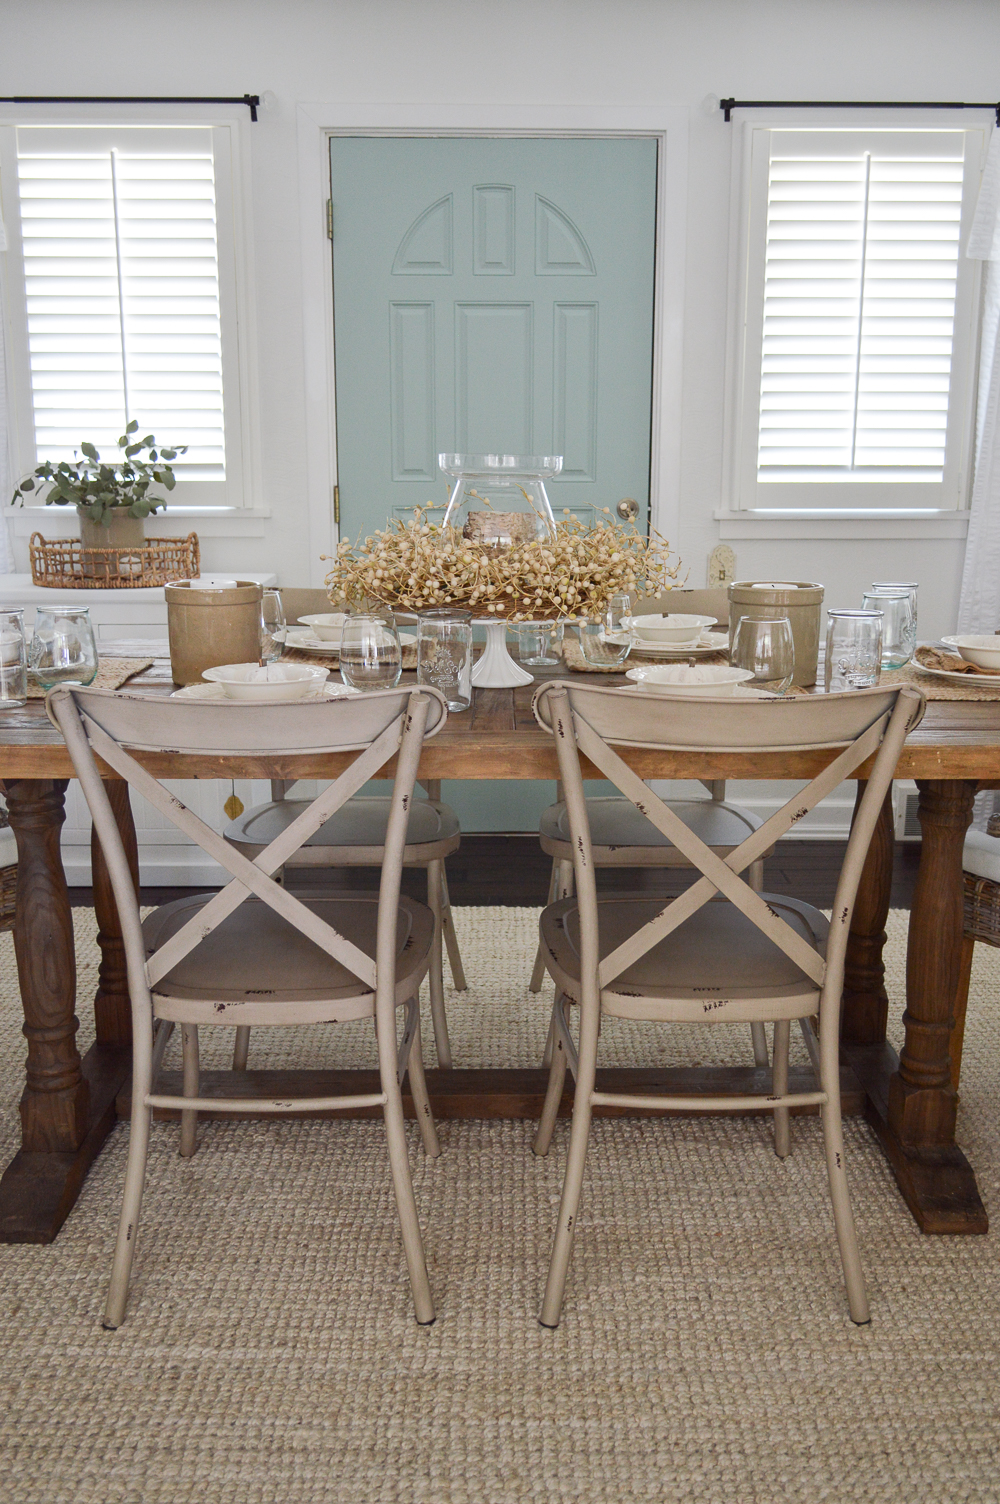 Easy Summer to Fall Dining Room Decorating Ideas - Cottage farmhouse, farm table, centerpiece, aqua door.